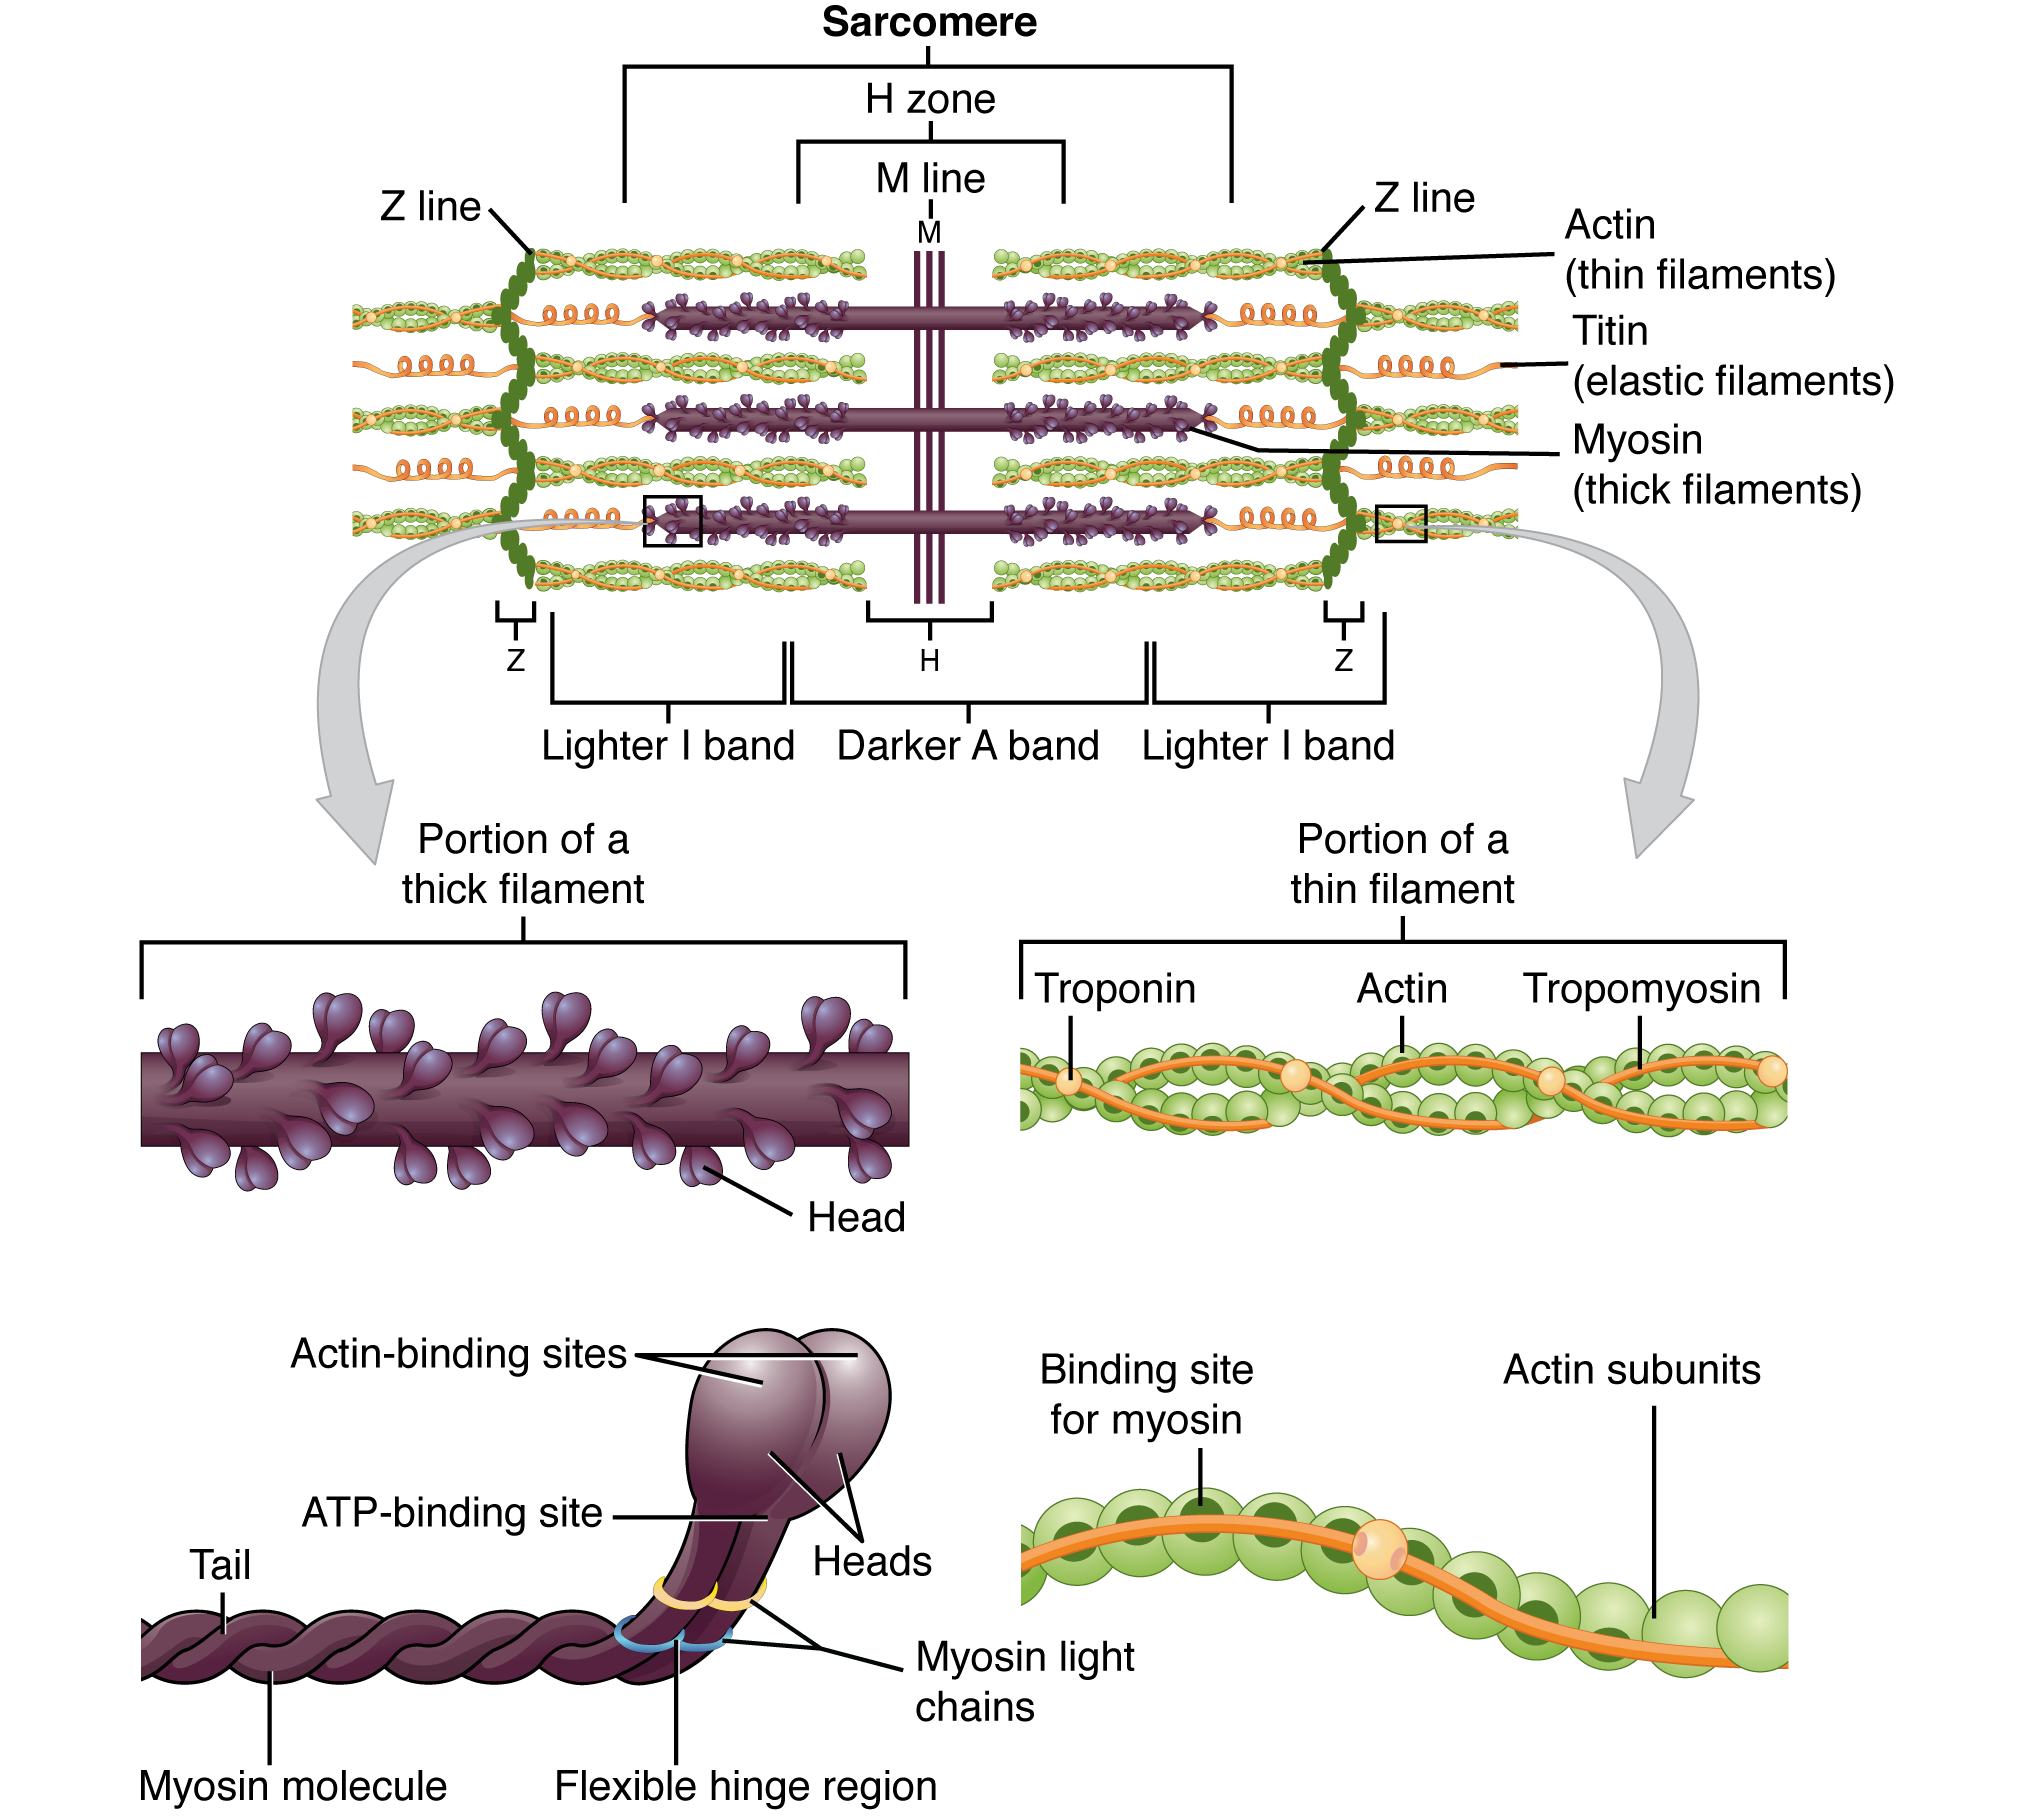 This figure shows the structure of thick and thin filaments. On the top of the image a sarcomere is shown with the H zone, Z line and M lines labeled. To the right of the bottom panel, the structure of the thick filament is shown in detail. To the left of the bottom panel, the structure of a thin filament is shown in detail.